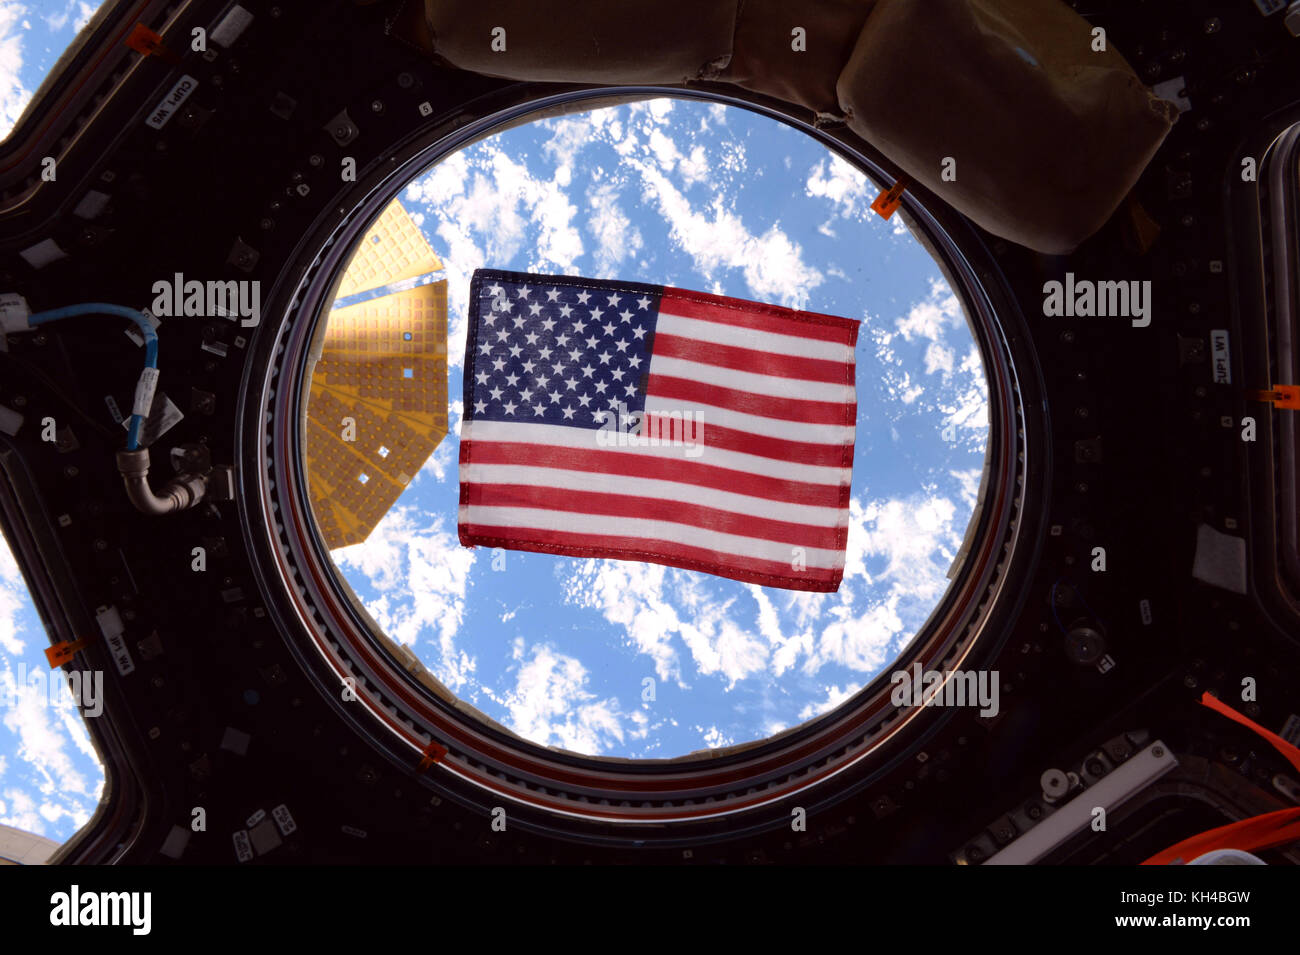 American Flag through window of International Space Station, by NASA - Stock Image